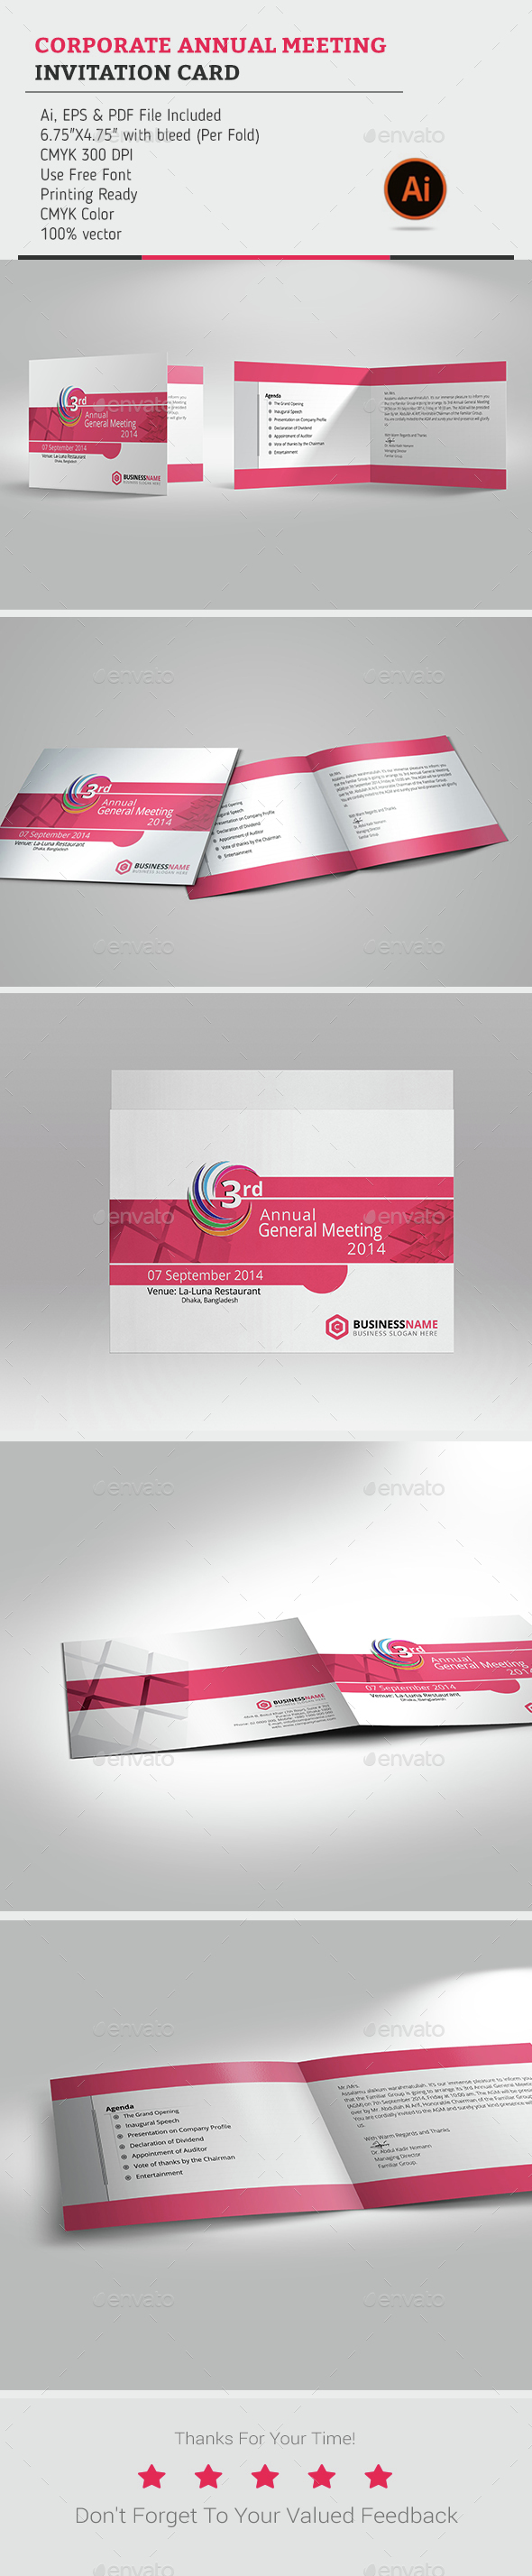 Corporate annual meeting invitation card by ideazsabbir graphicriver corporate annual meeting invitation card cards invites print templates stopboris Image collections